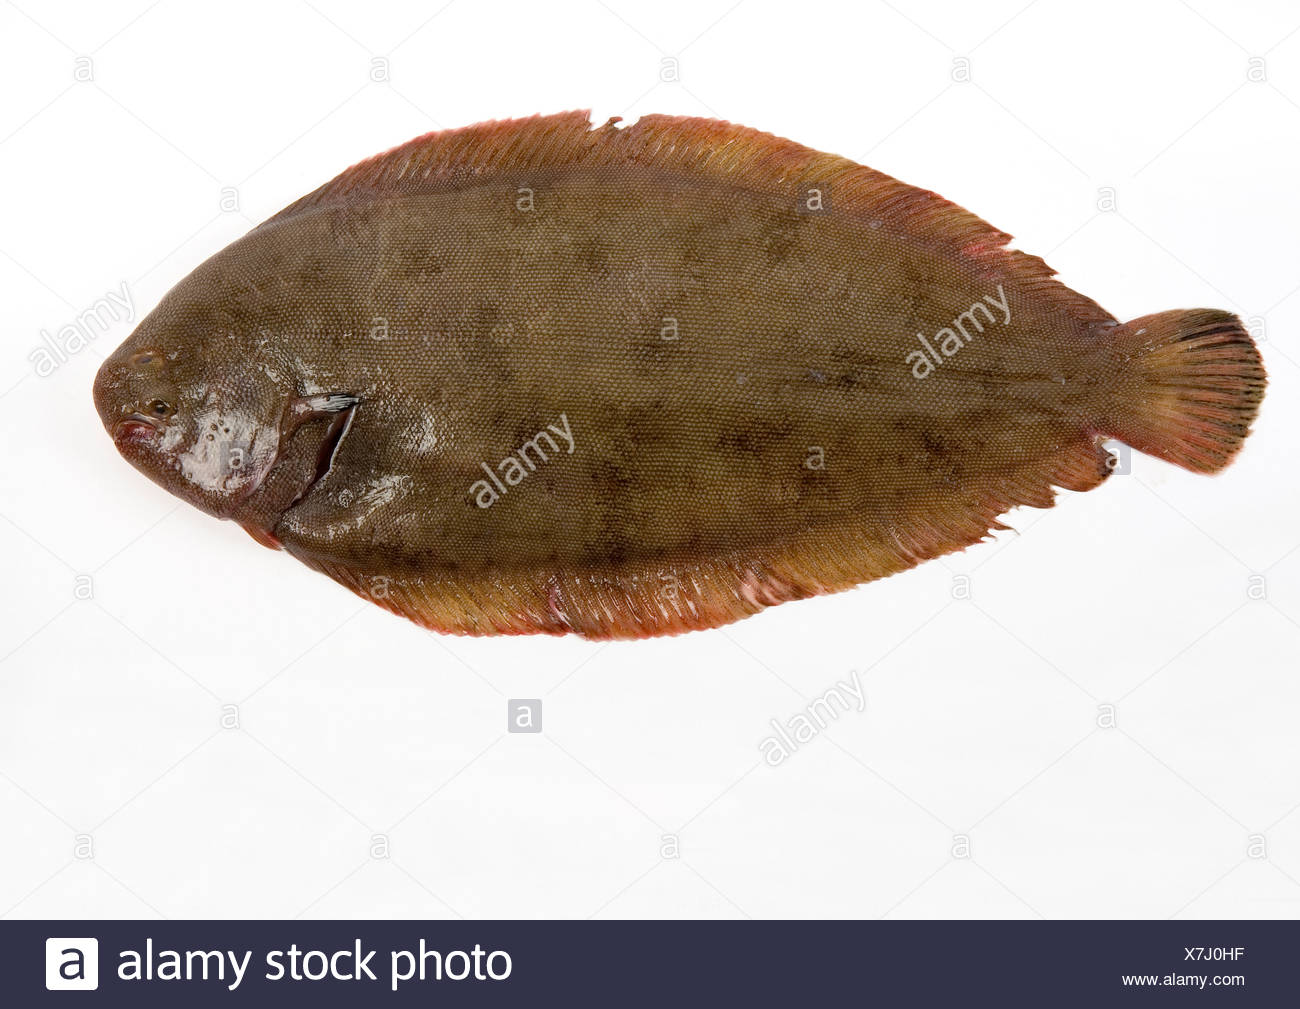 Dover sole on white background - Stock Image